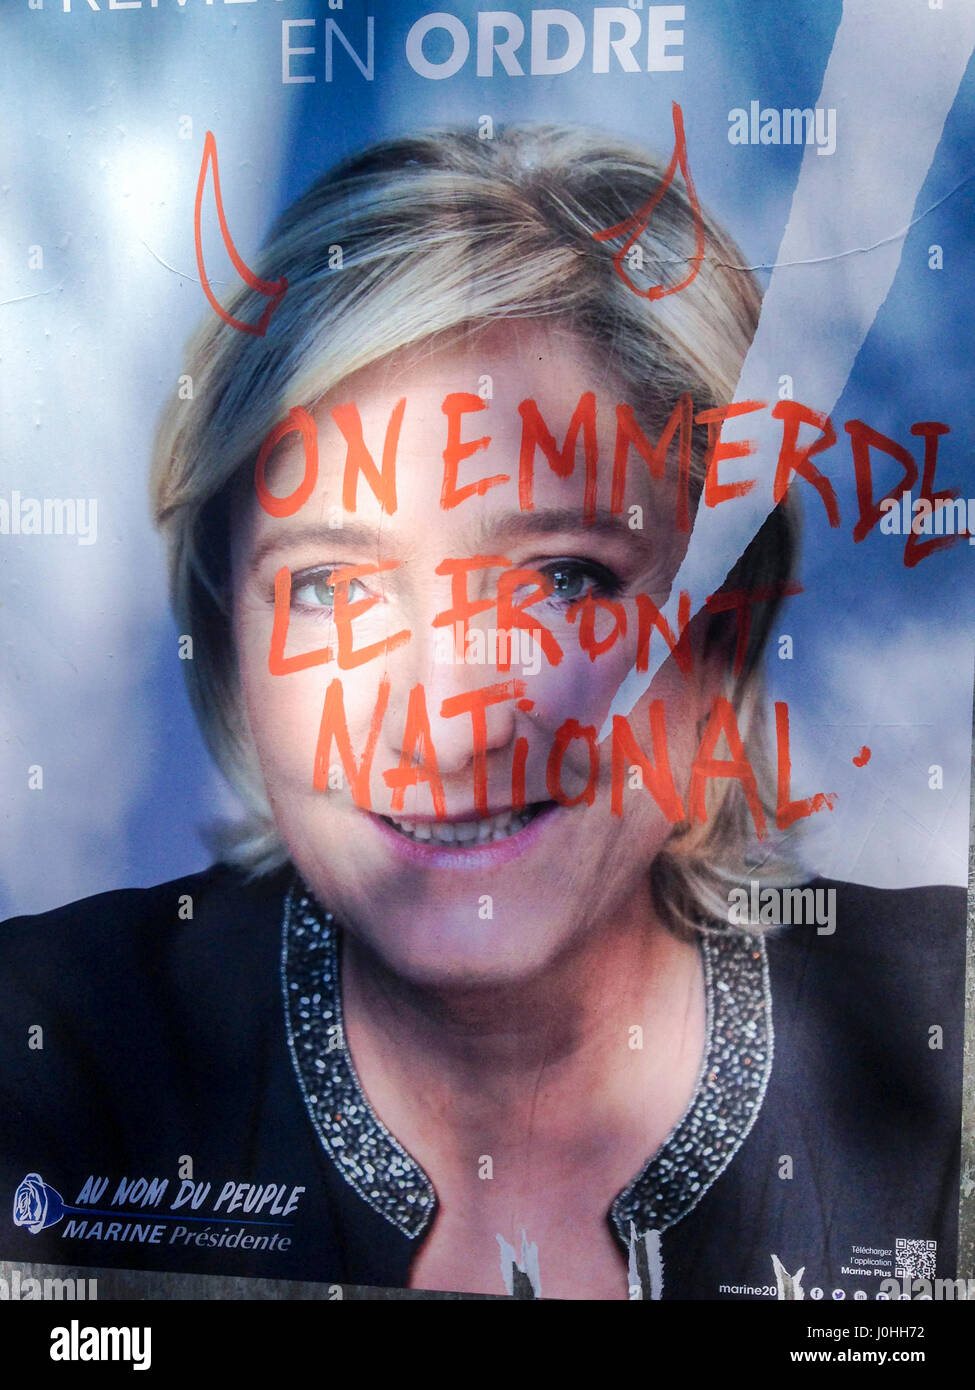 Antony, France, Defaced Political Elections French Poster, National Front, Marine Le Pen - Stock Image